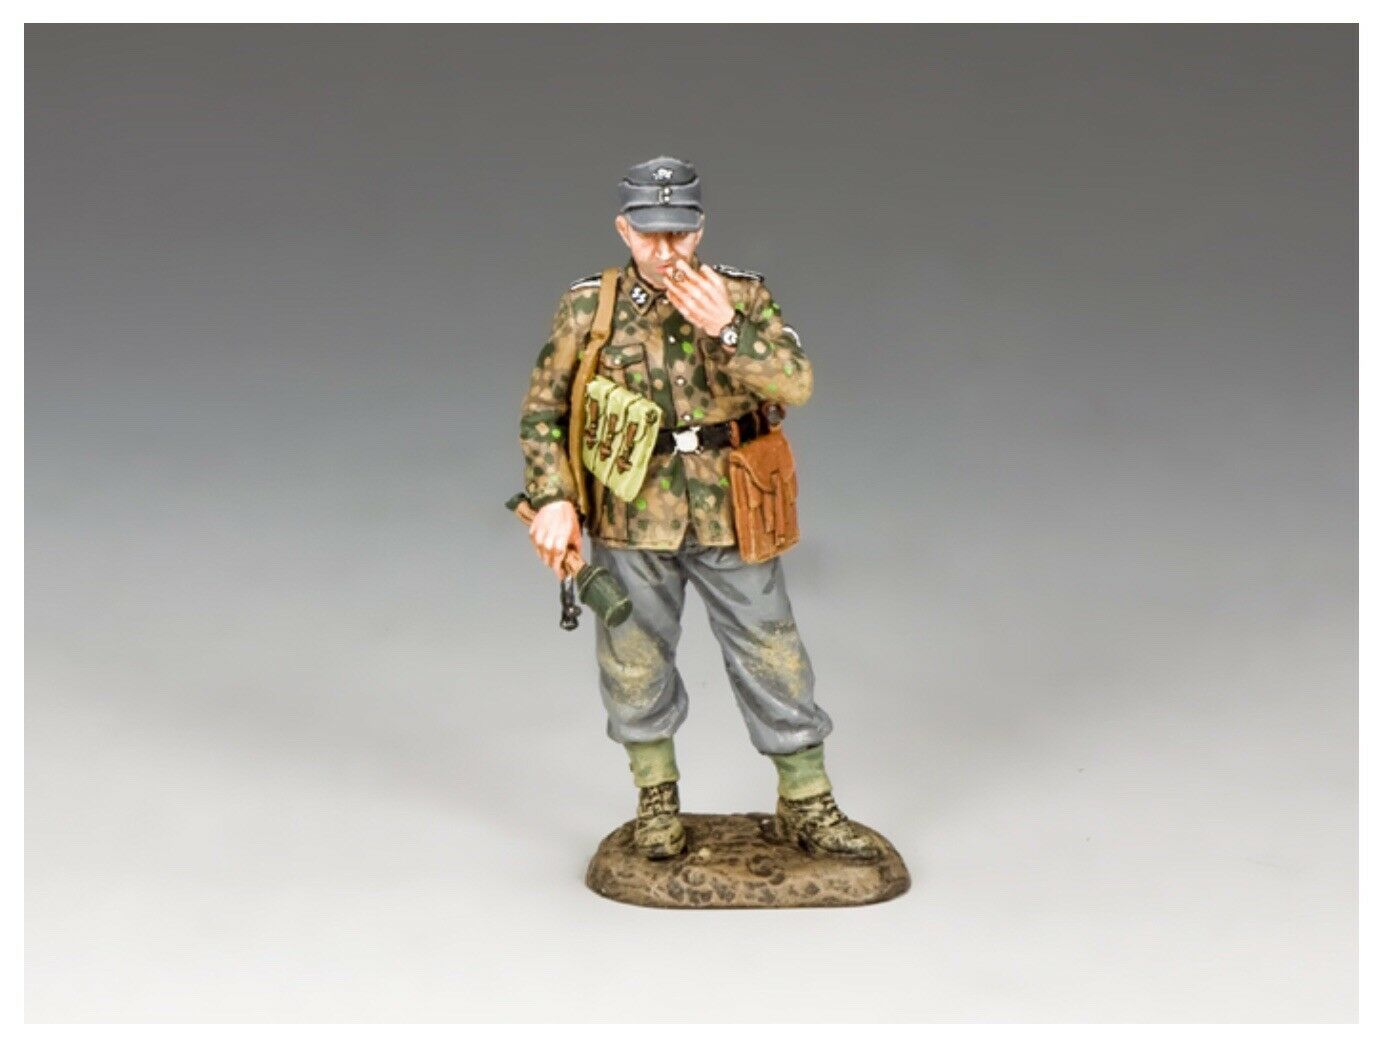 WS326 WW2 'Smoke Break' Standing German Soldier Mint in Box Normandy D-Day